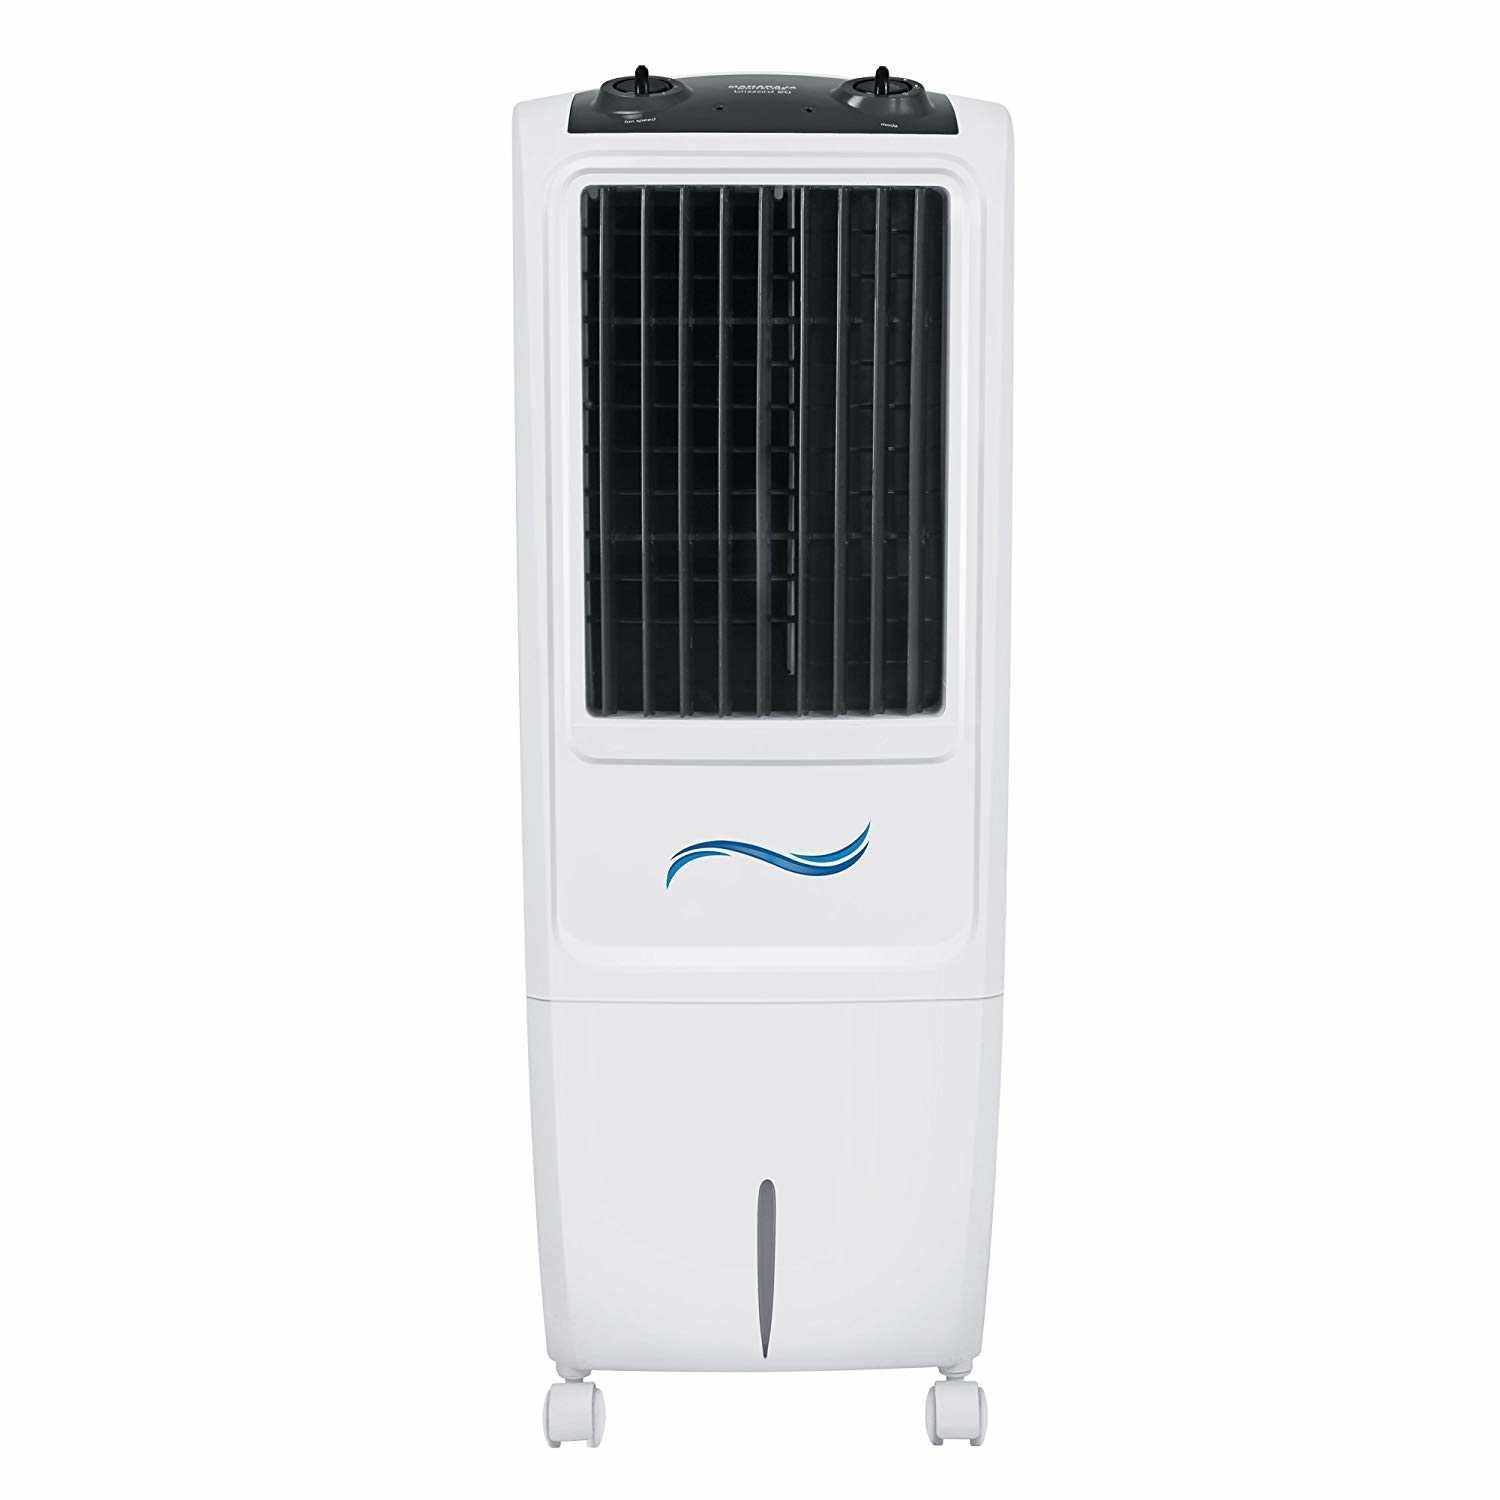 Maharaja Whiteline Blizzard 20 Litre Air Cooler